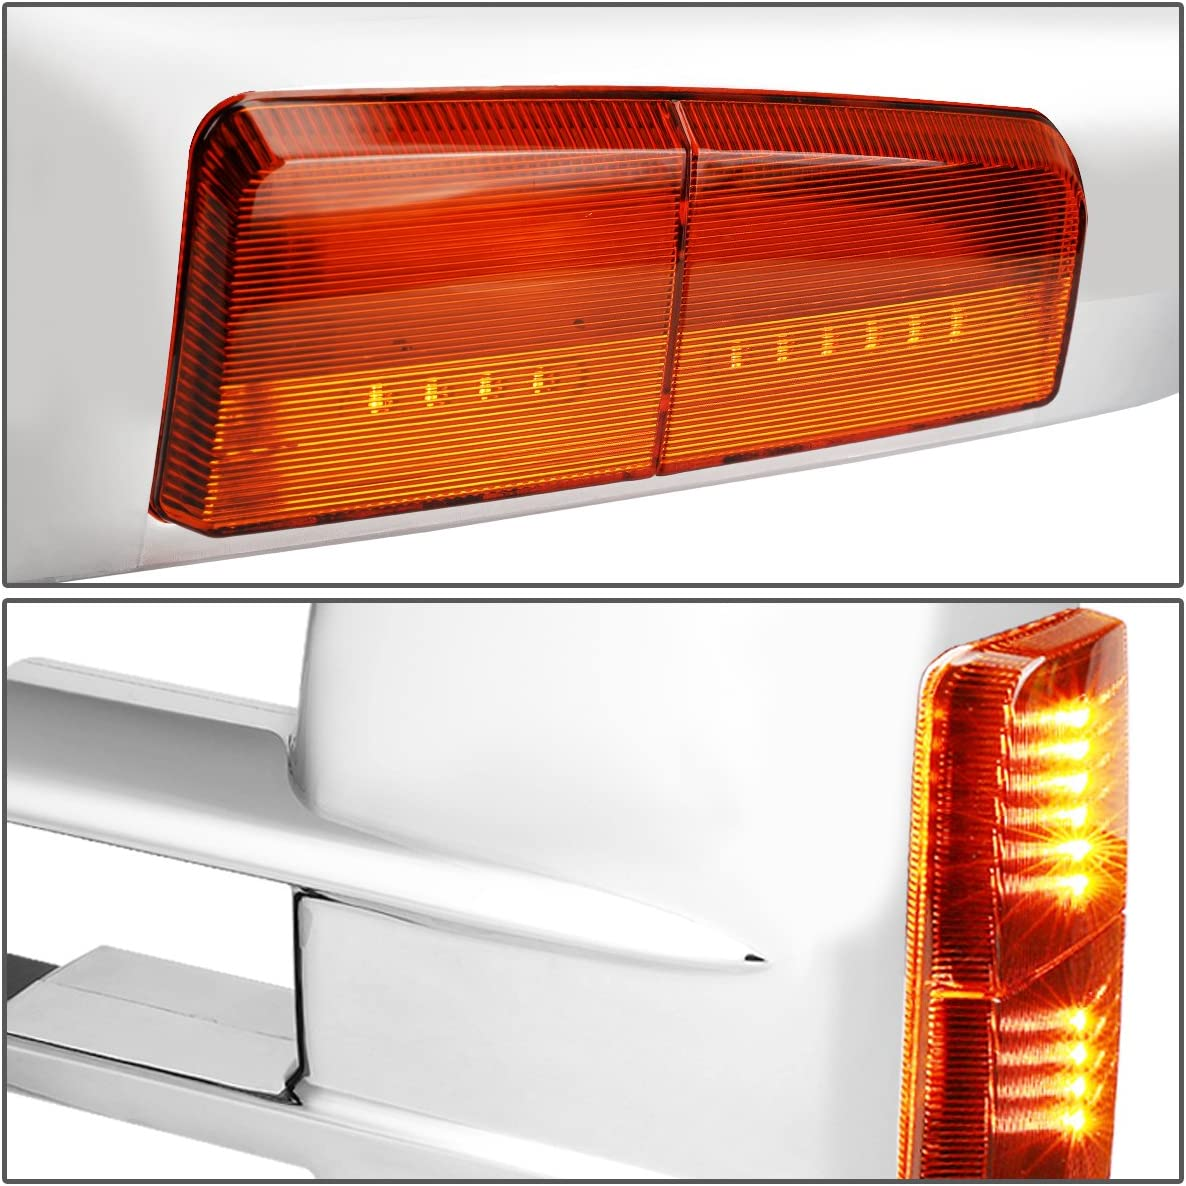 Driver and Passenger Sides,Chrome Amber DNA MOTORING TWM-020-T999-CH-AM Pair Of Towing Side Mirrors